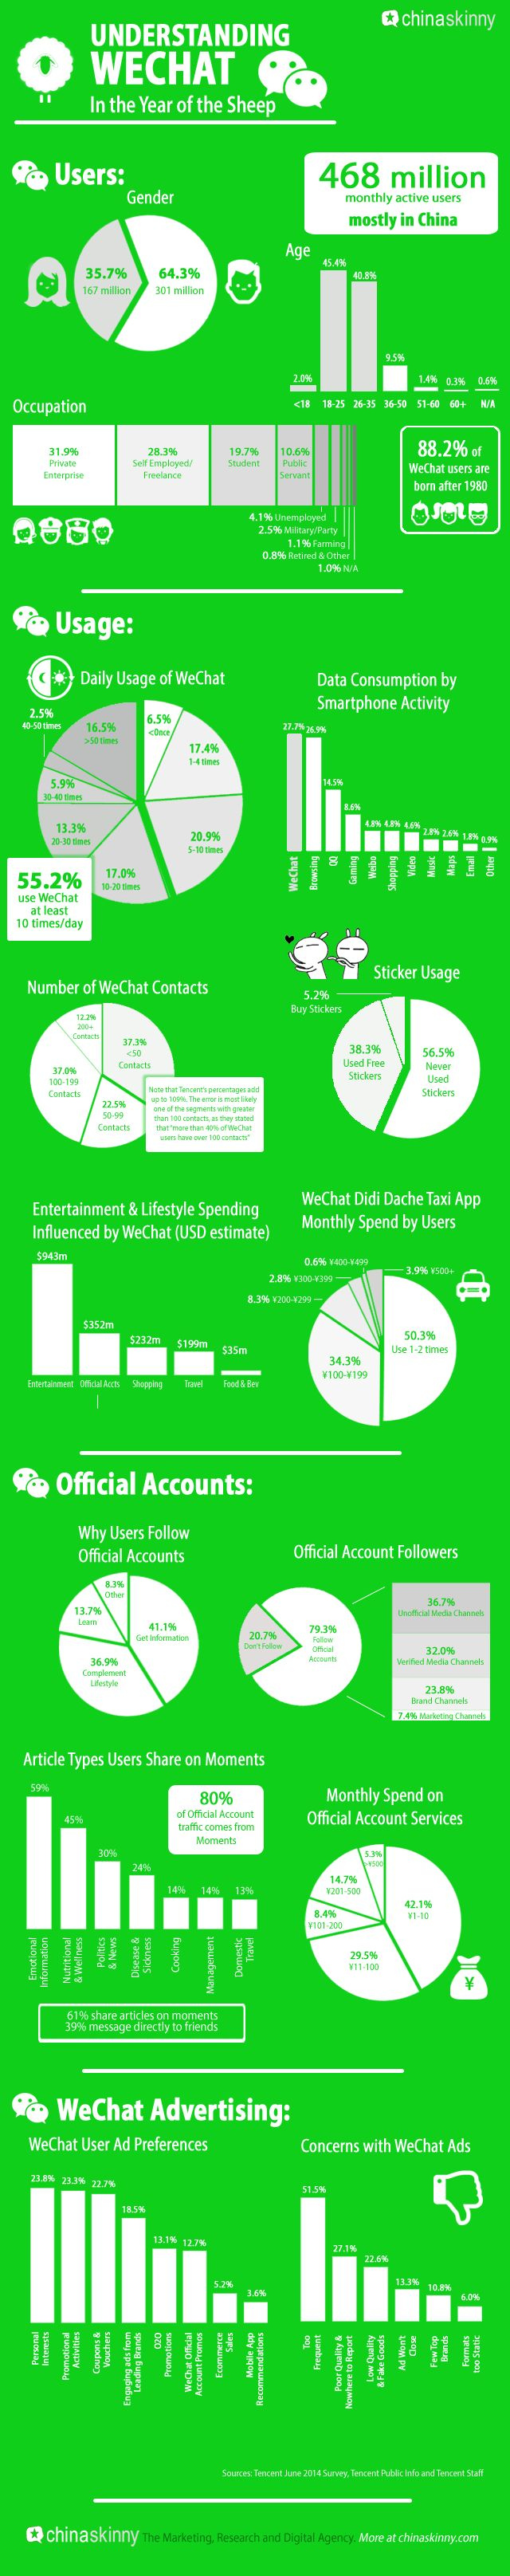 WeChat User Data infographic